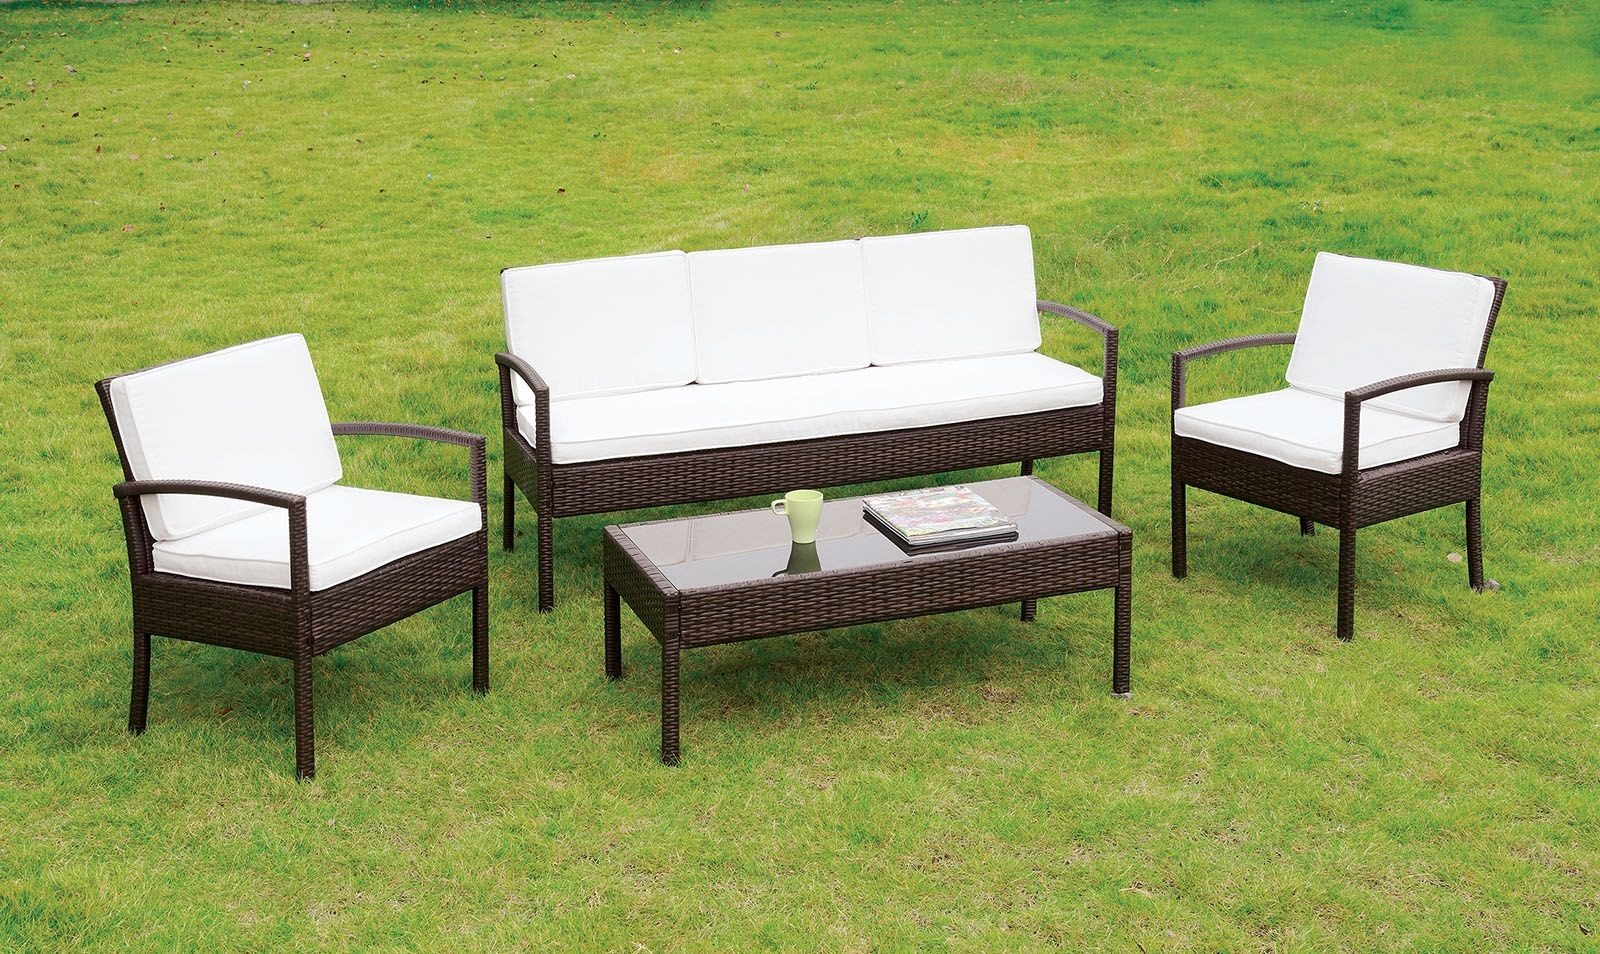 Makenna White And Espresso 4 Piece Patio Seating Set From